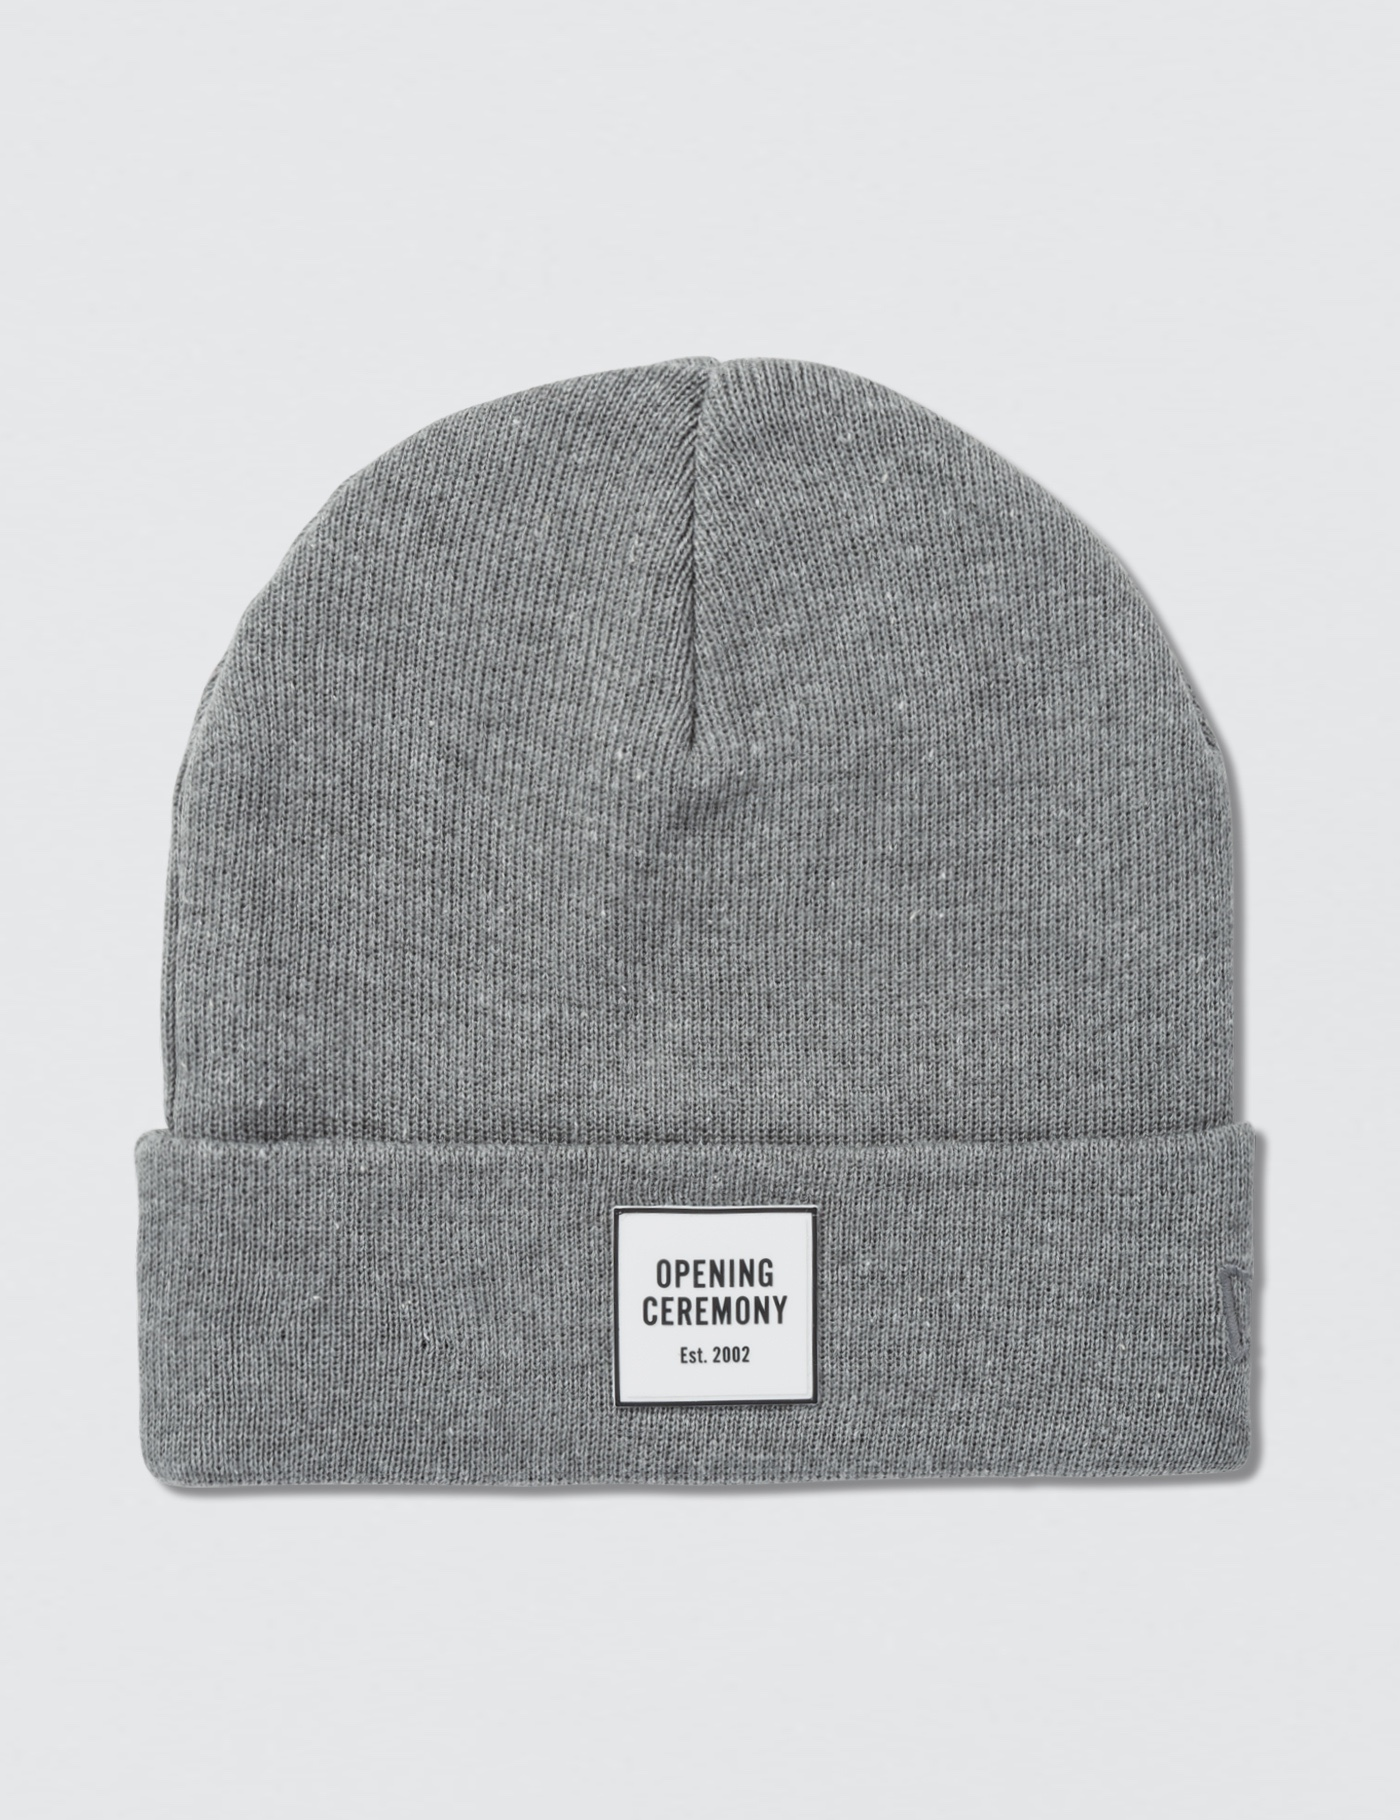 Buy Original Opening Ceremony OC Logo Knit Beanie at Indonesia ... 3483b6bc2292